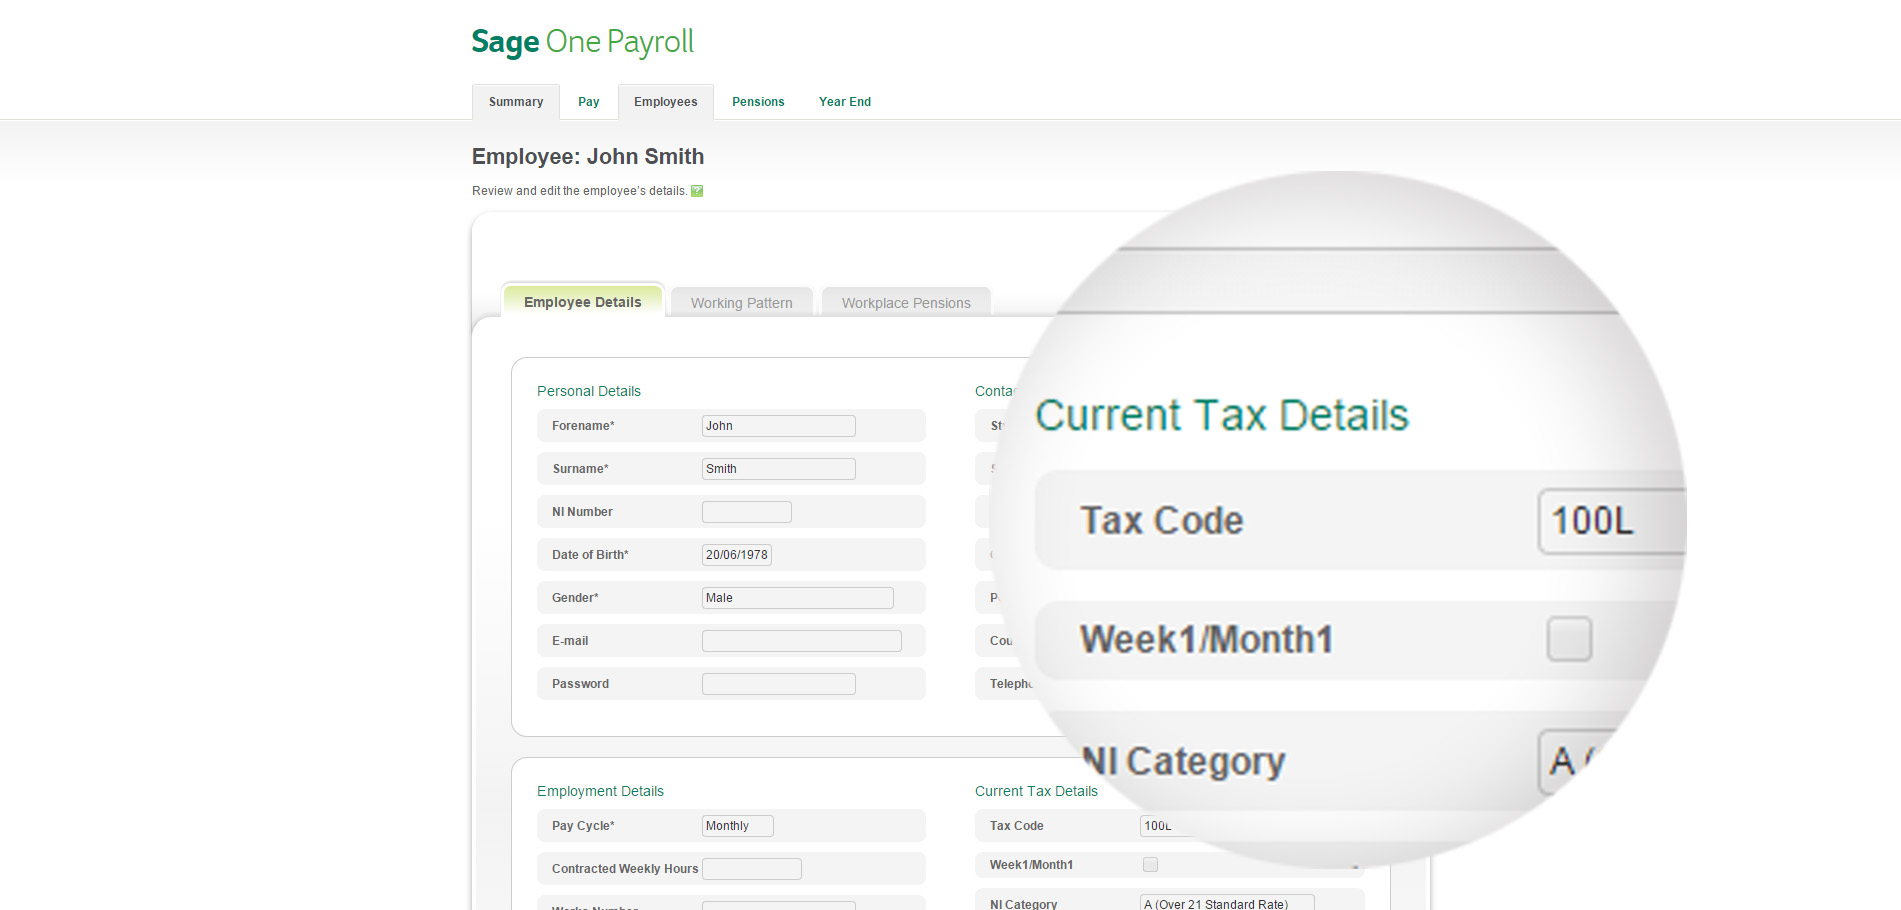 Sage One Payroll is the simple way to manage HMRC tax codes for your employees so you can ensure they pay the right amount of tax.